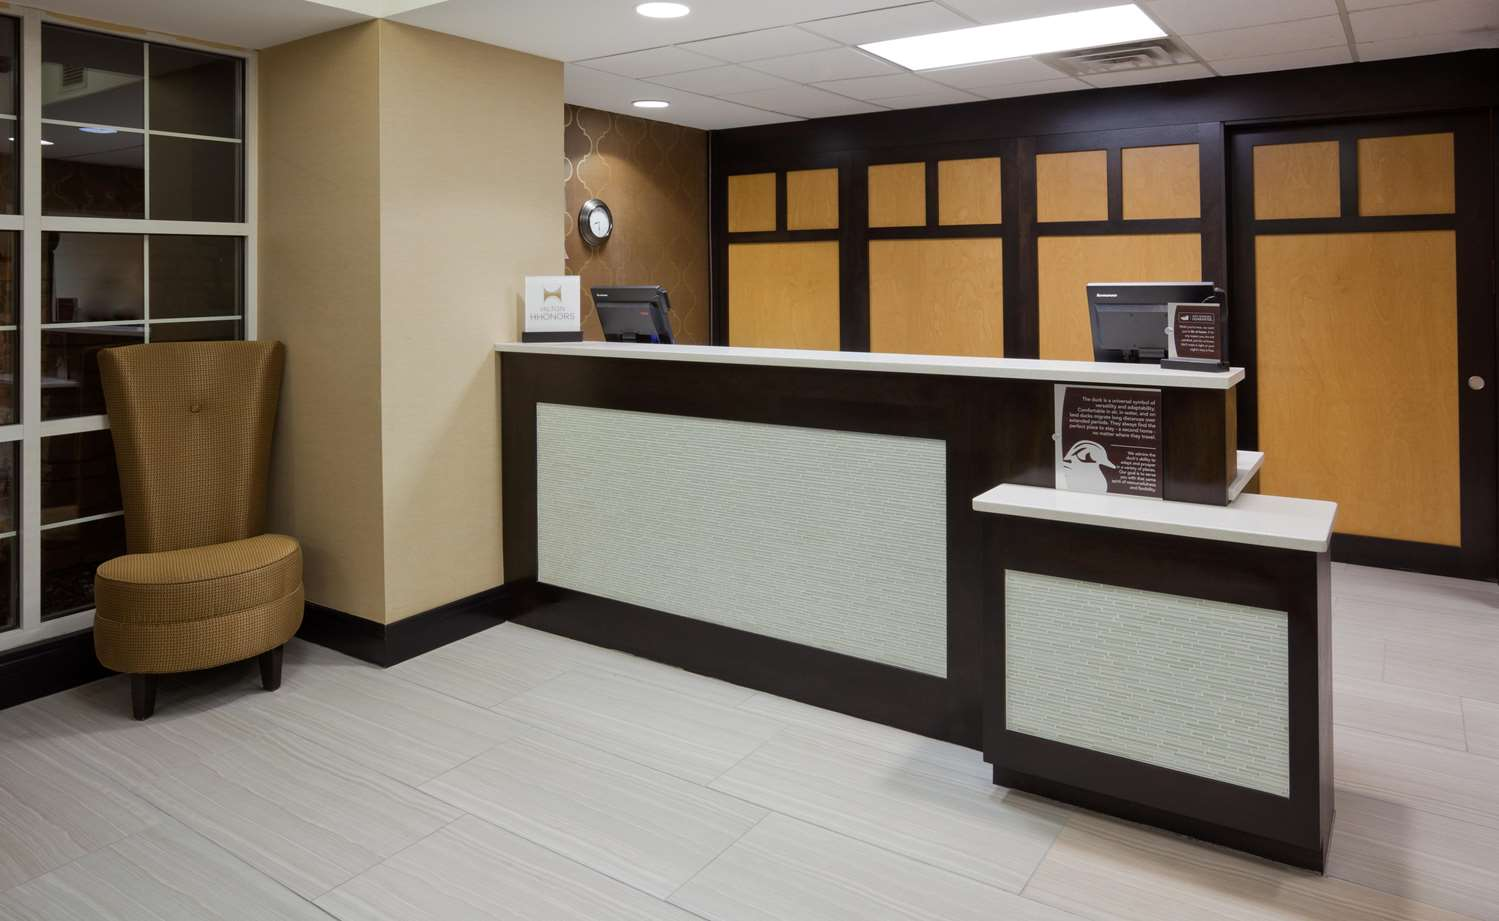 Lobby - Homewood Suites by Hilton Sioux Falls